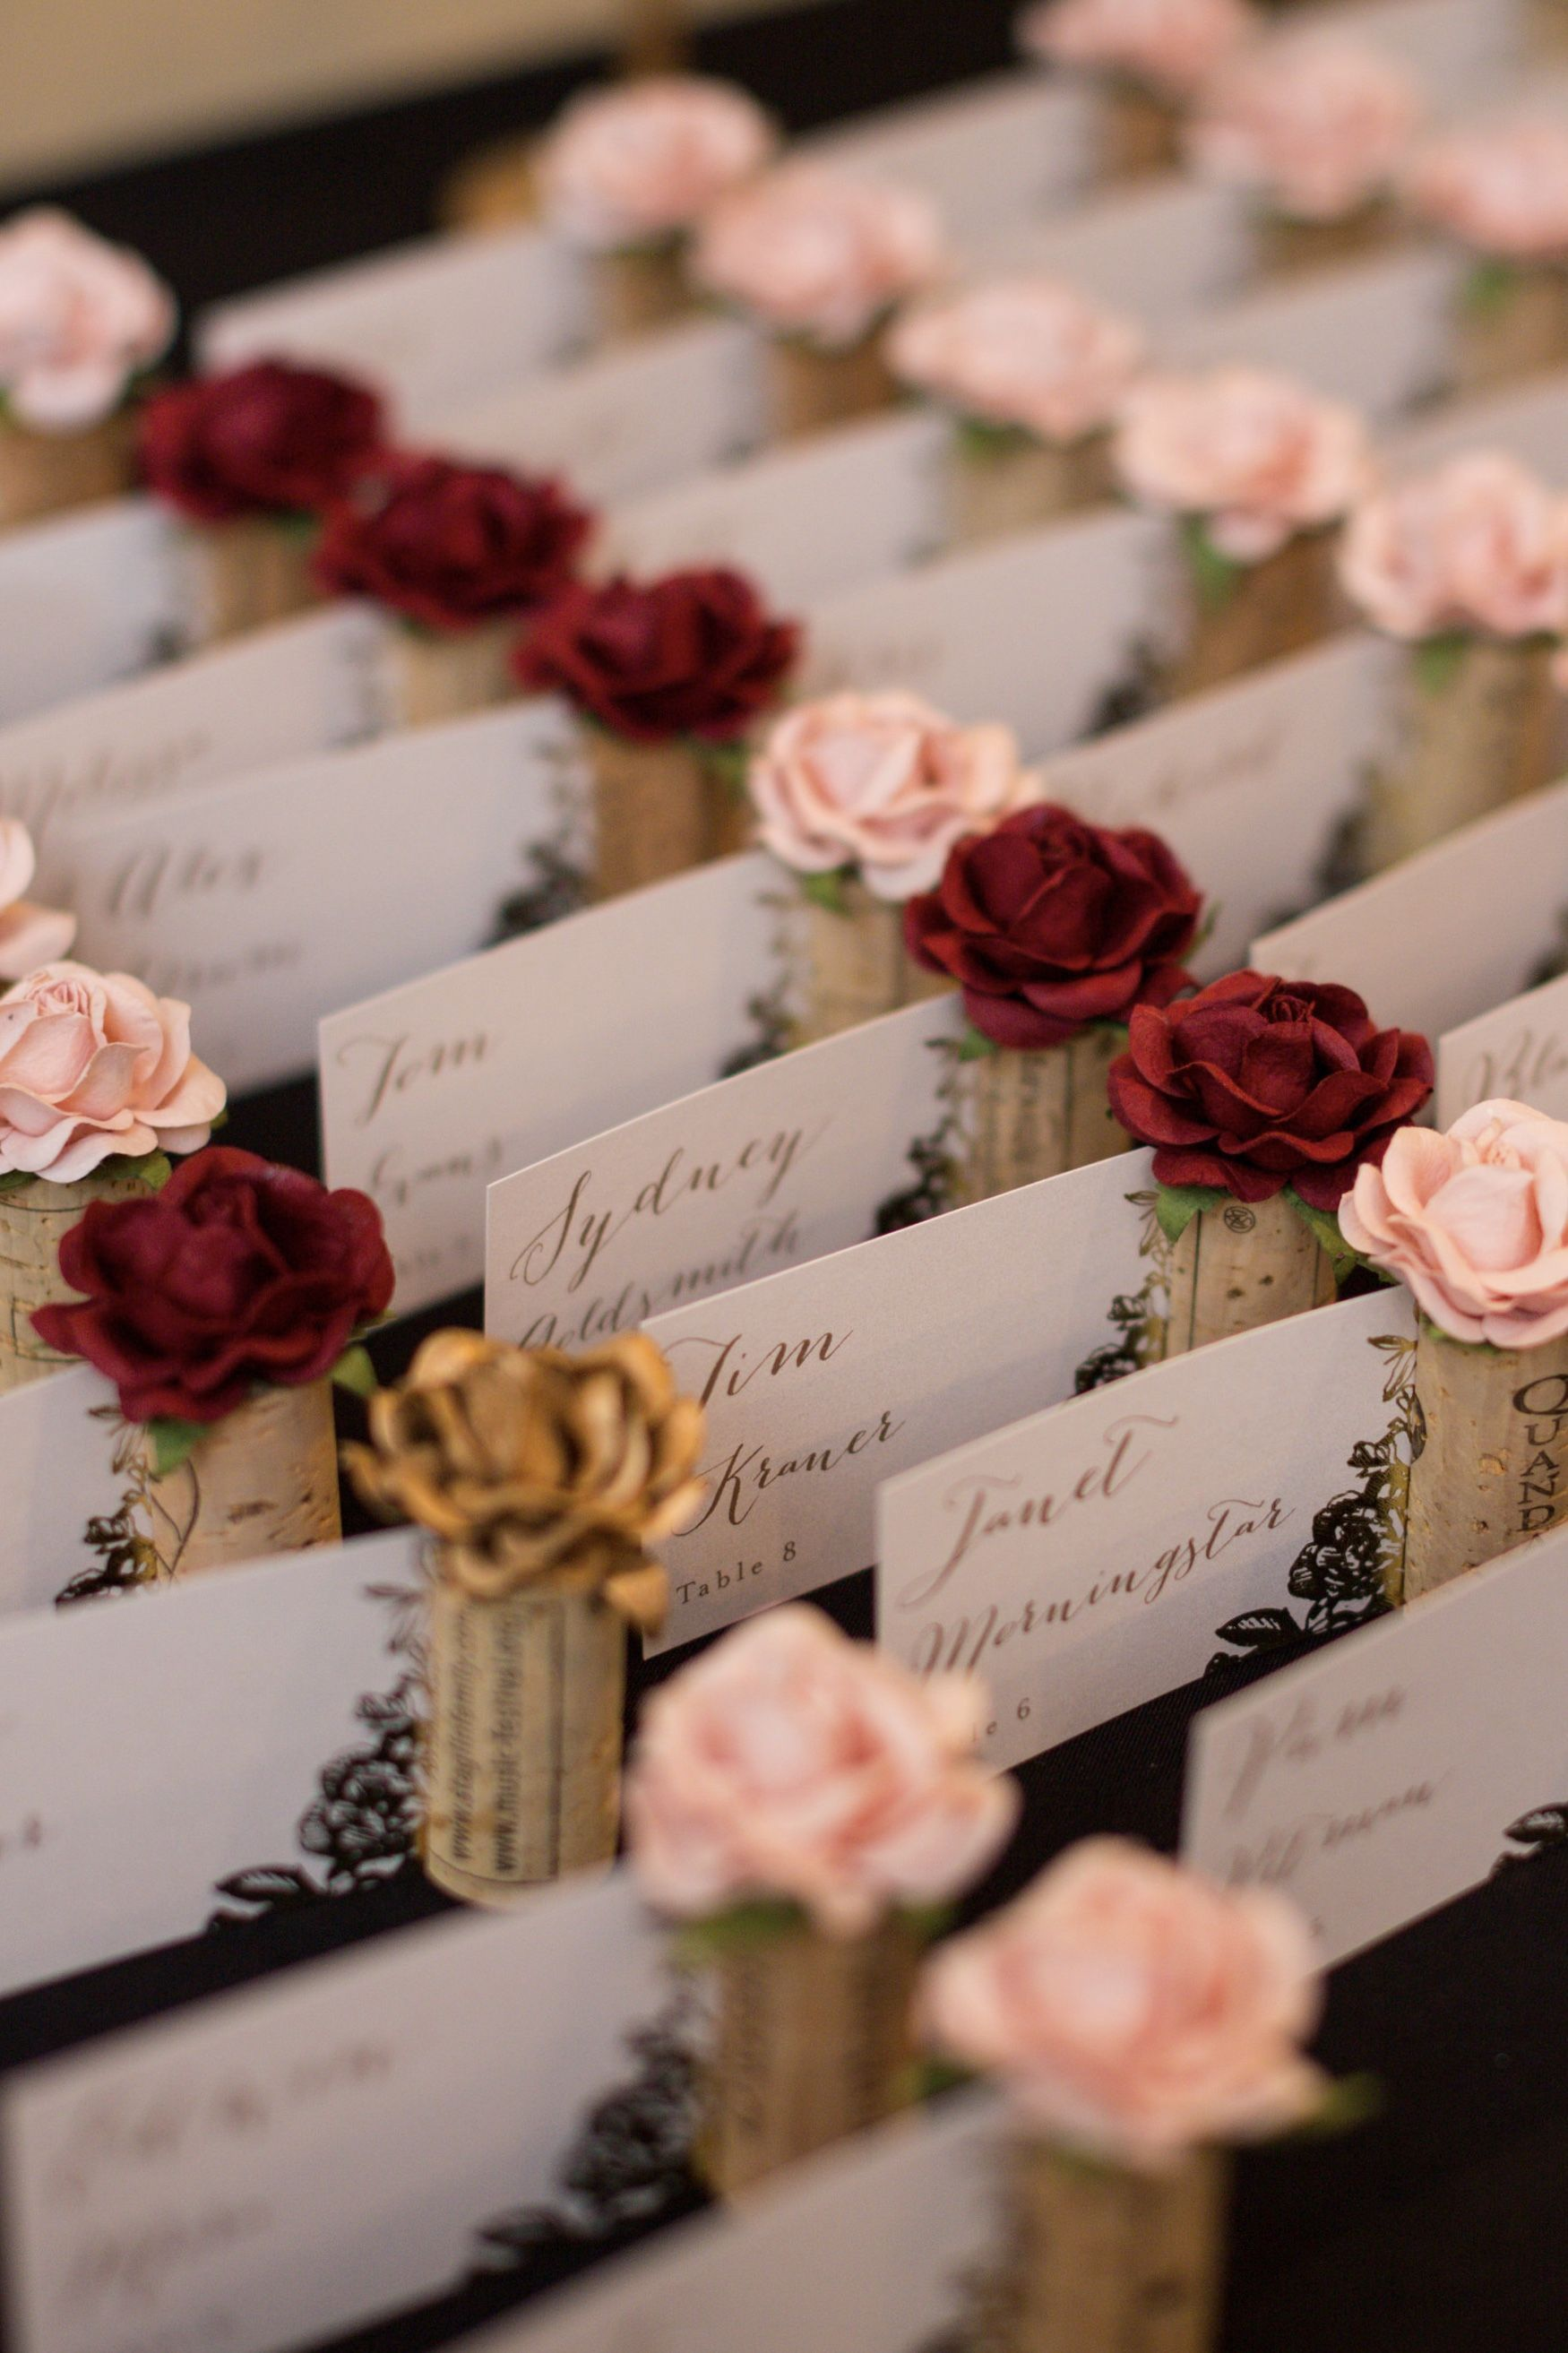 Wedding Place Card Holder Place Card Holders Wedding Wedding Place Cards Wedding Card Holder